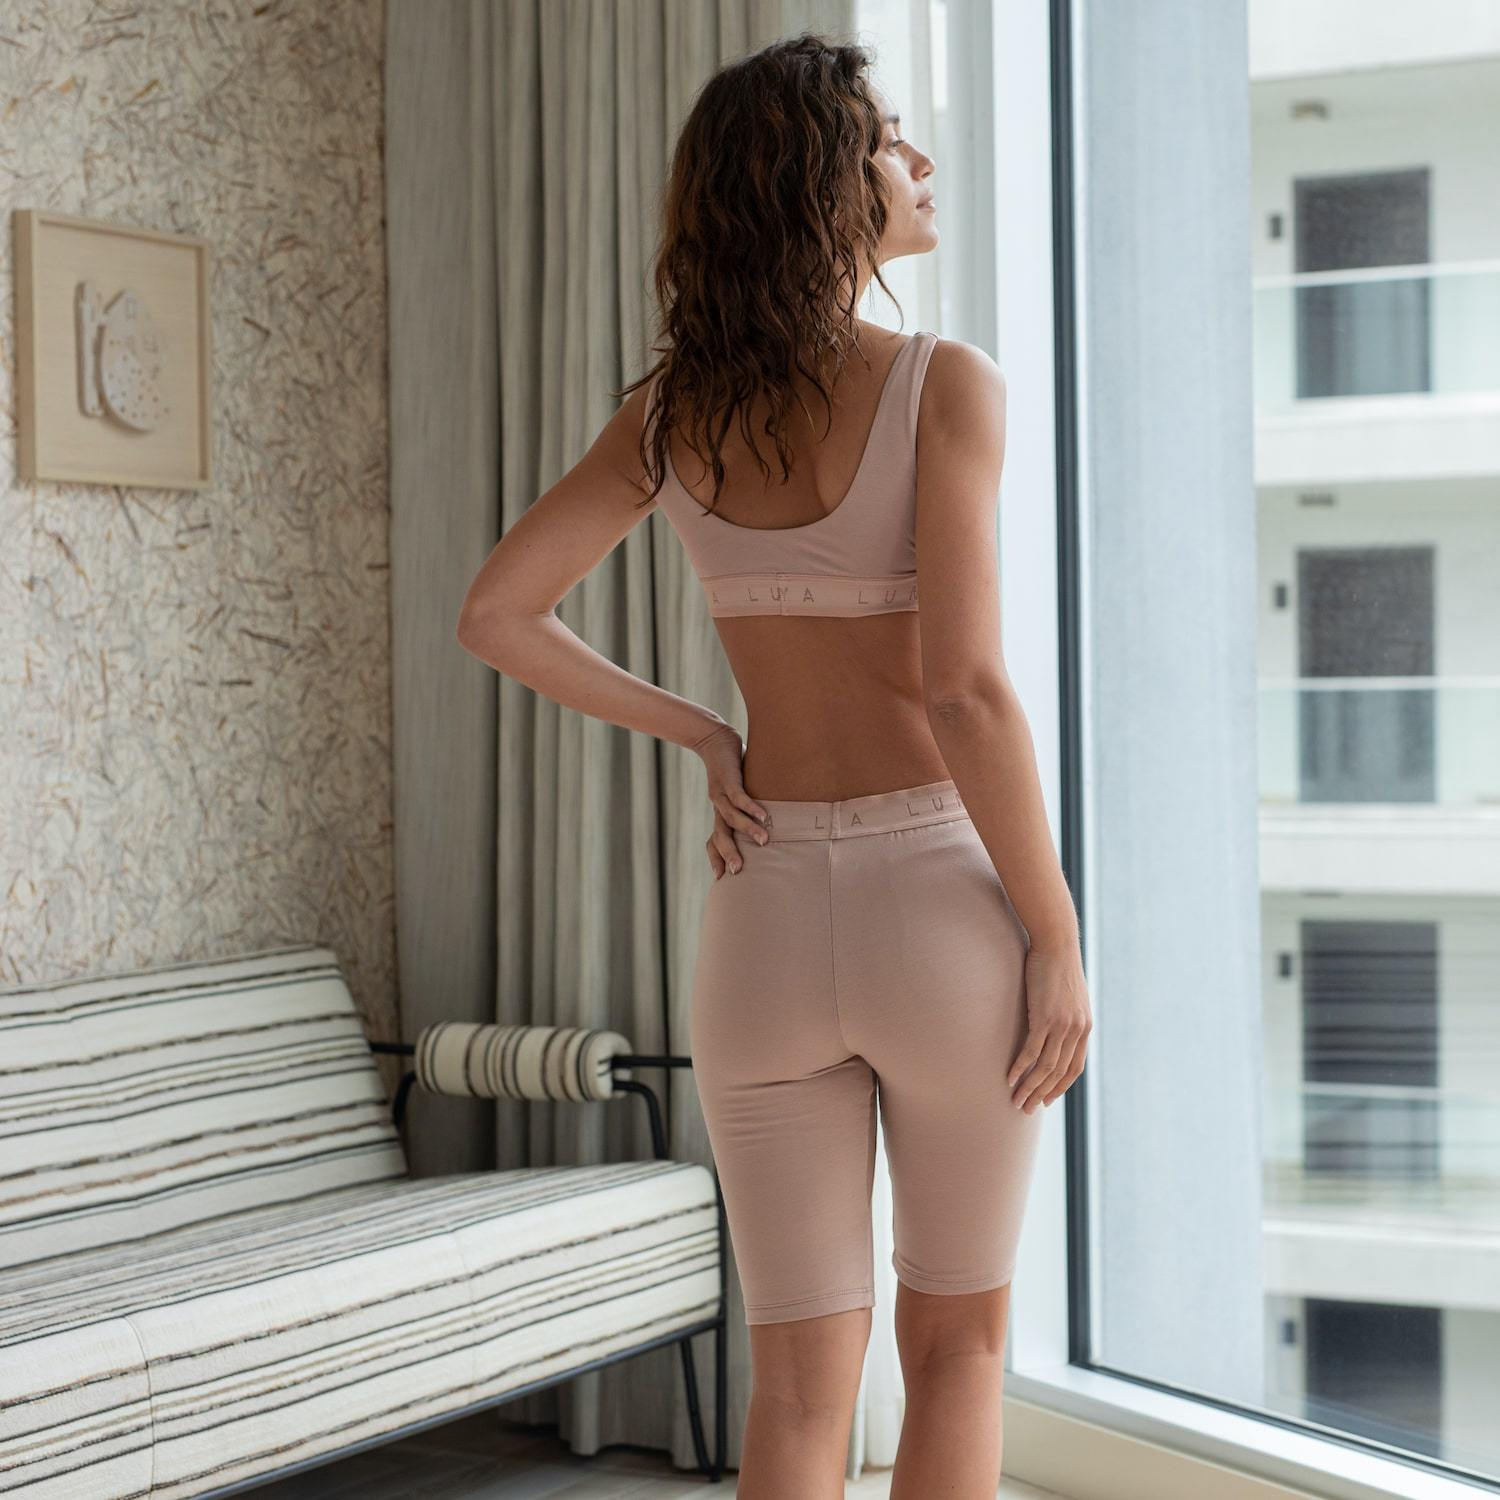 Lunya Sleepwear Siro Bike Short - #Bare/Bare